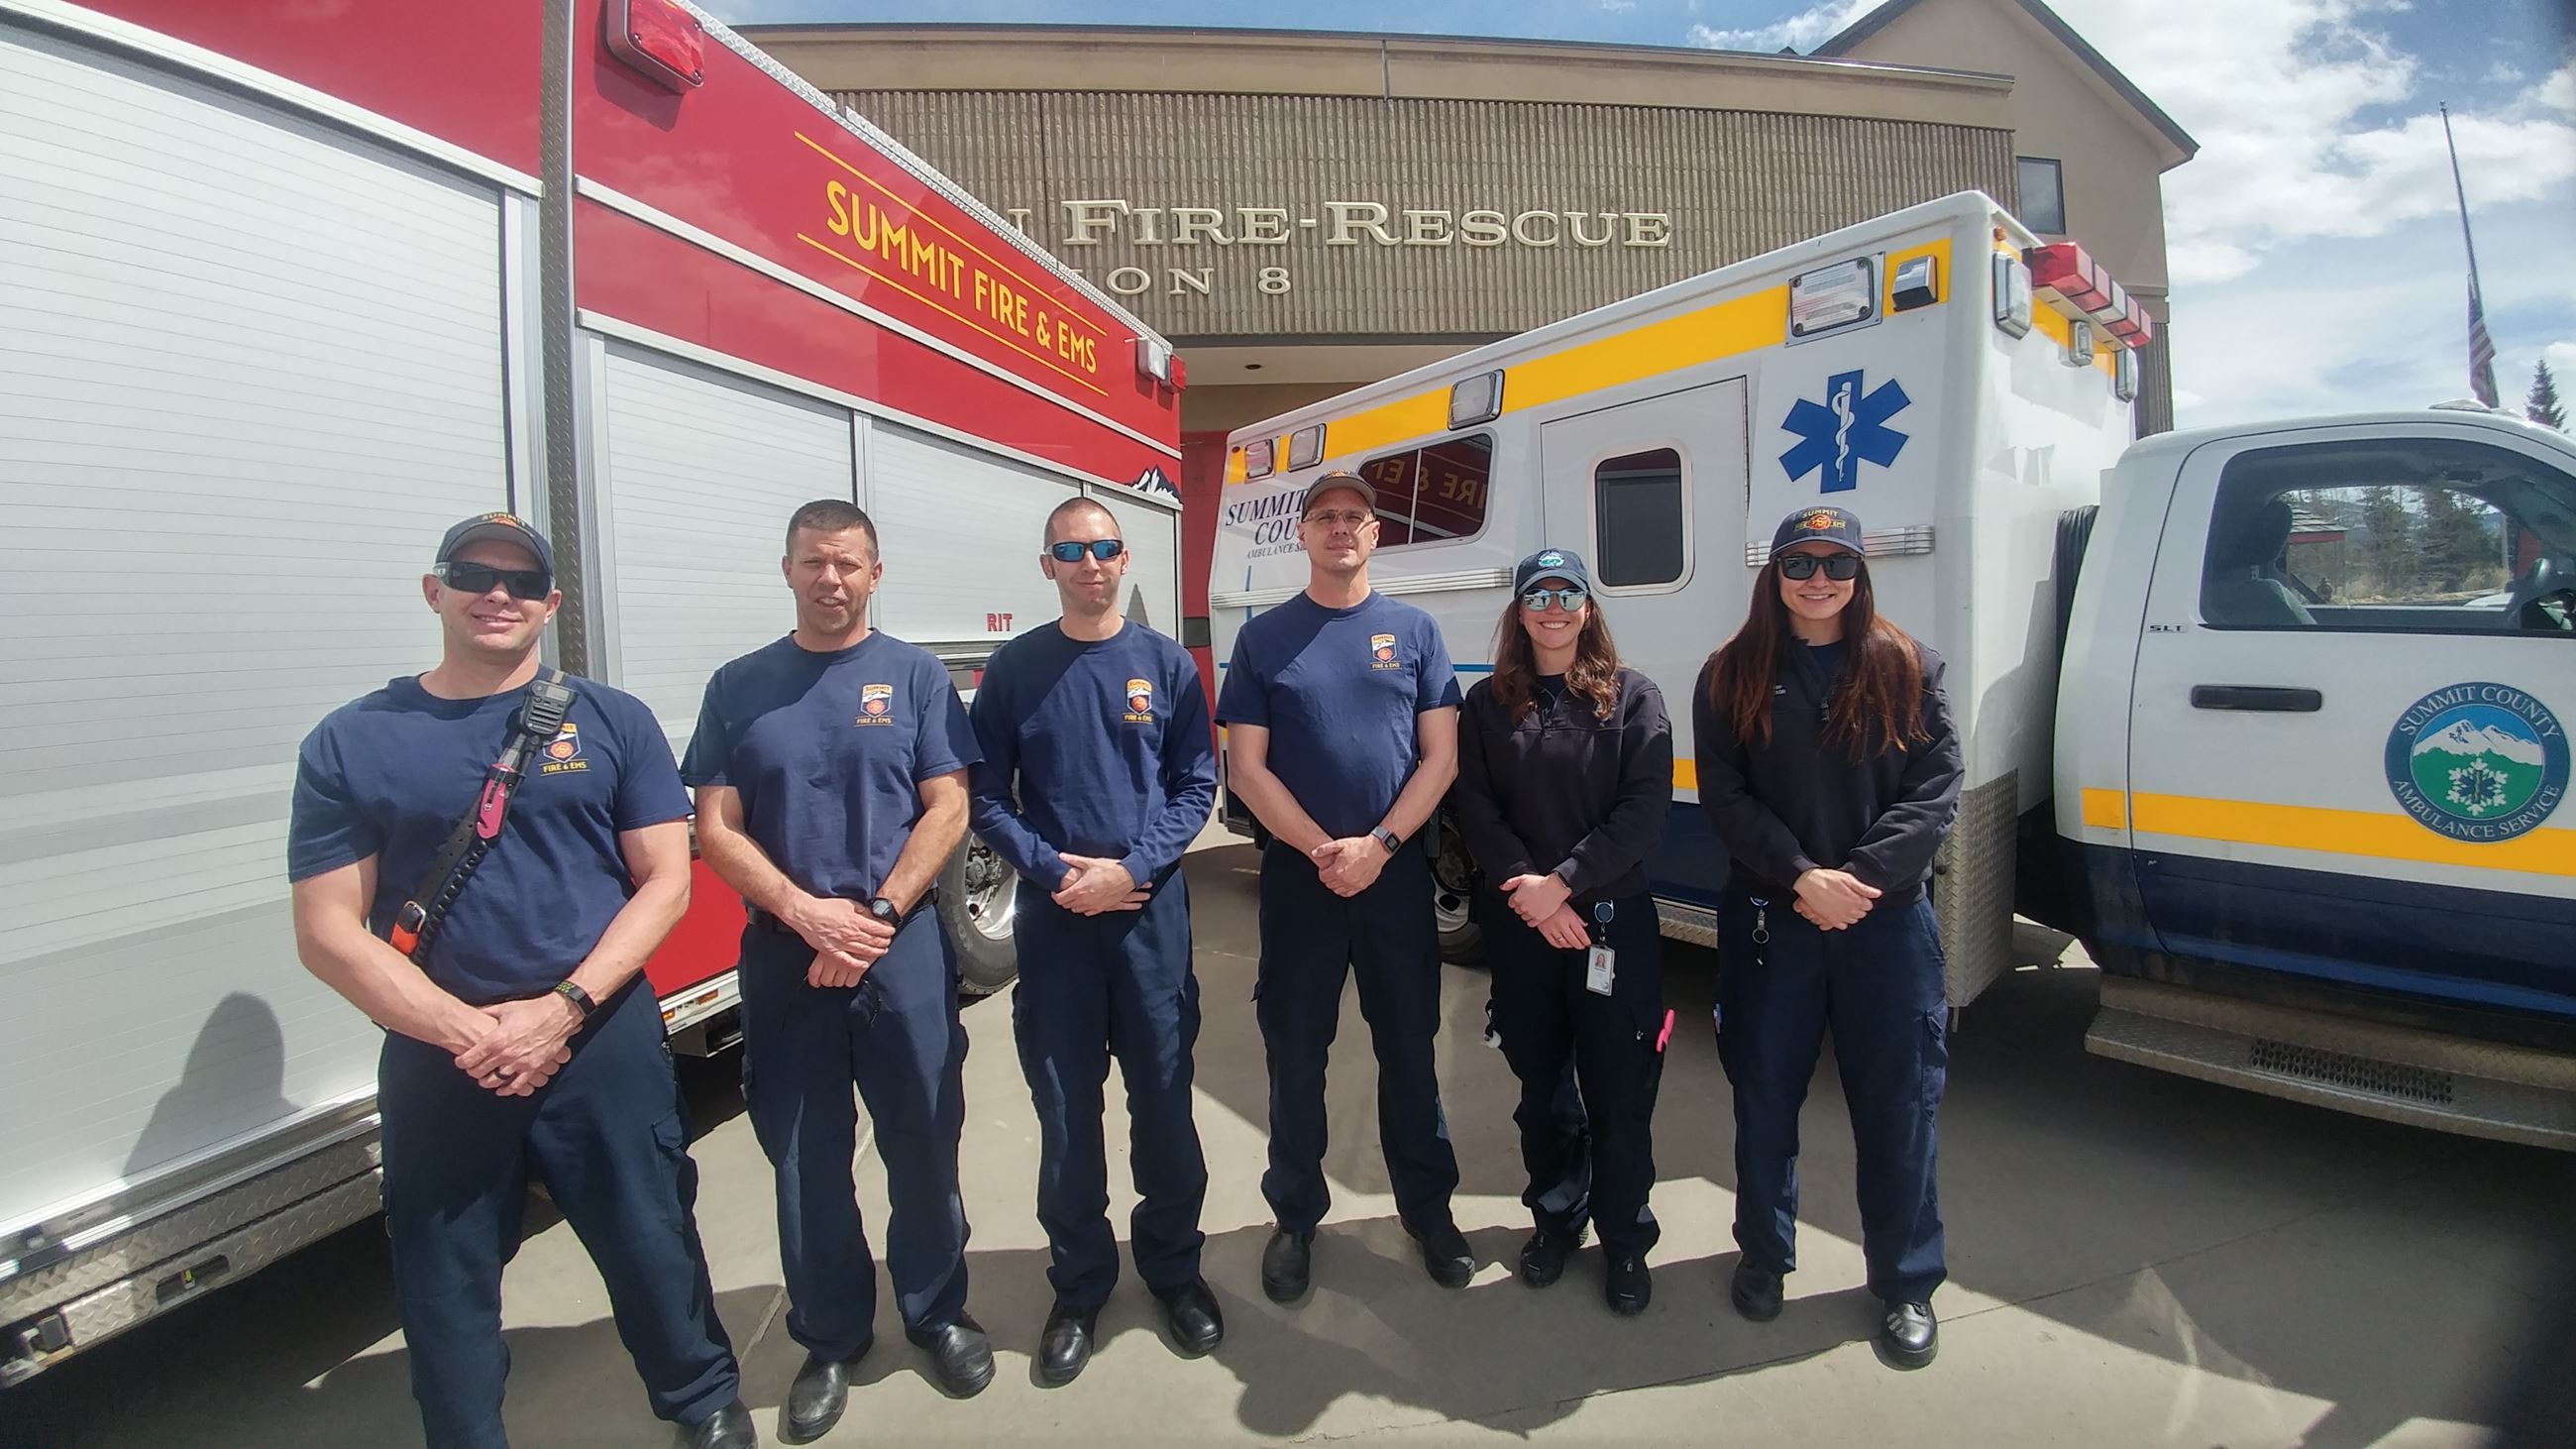 Summit Fire & EMS firefighters and Summit County Ambulance Service paramedics at the shared Station